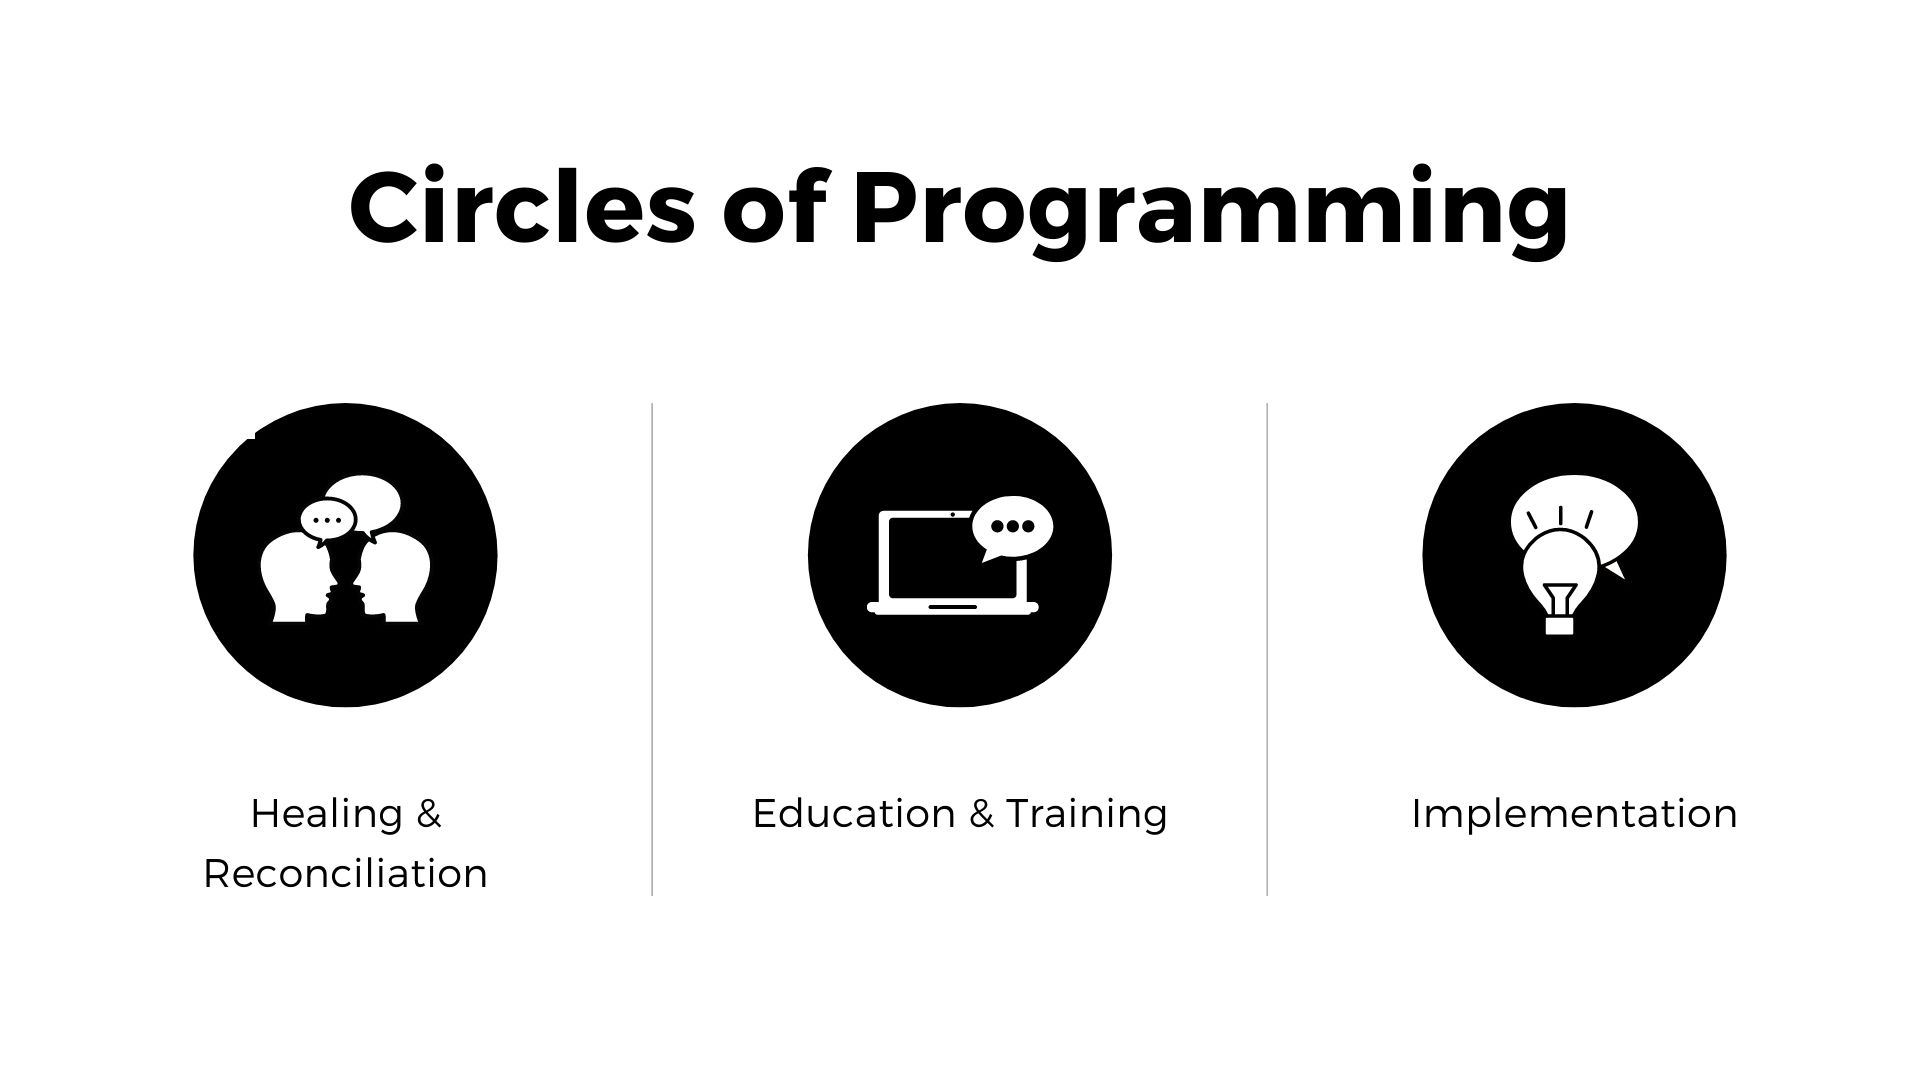 A black and white graphic of the 3 Circles of Programming: Healing & Reconciliation, Education & Training, and Implementation.